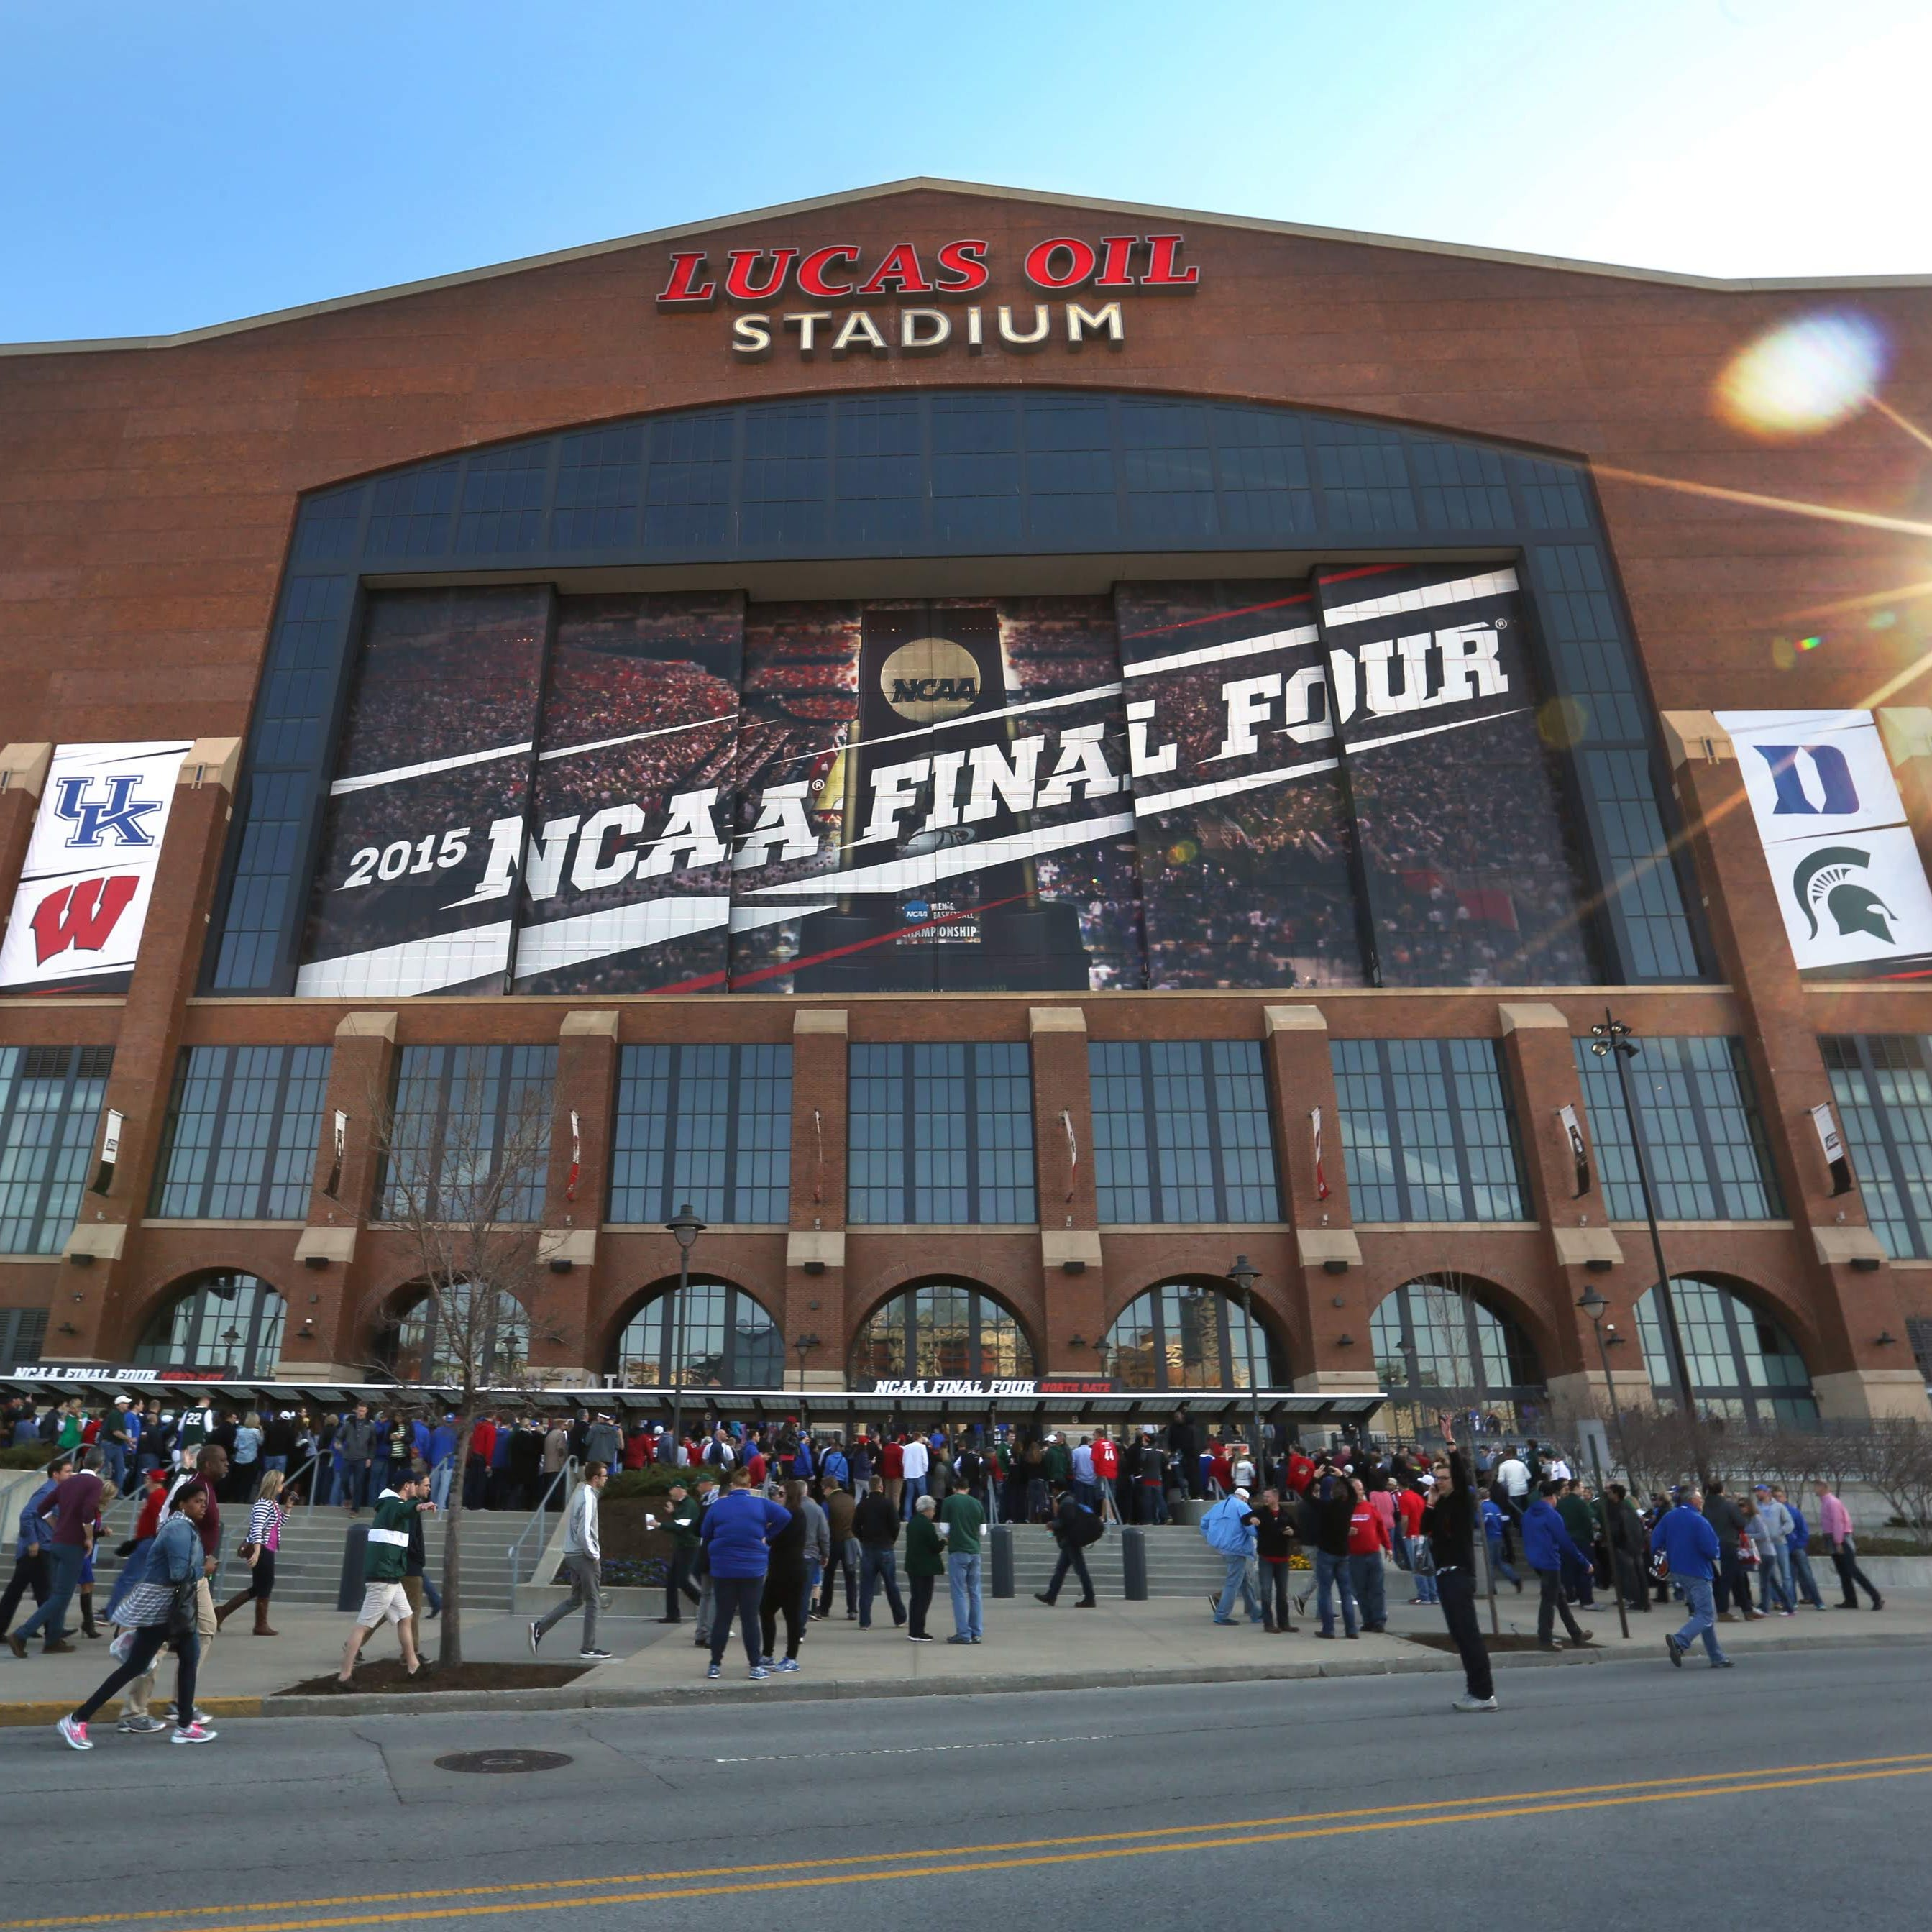 Alcohol sales will be new to the lineup when Indianapolis hosts its 8th Final Four in 2021